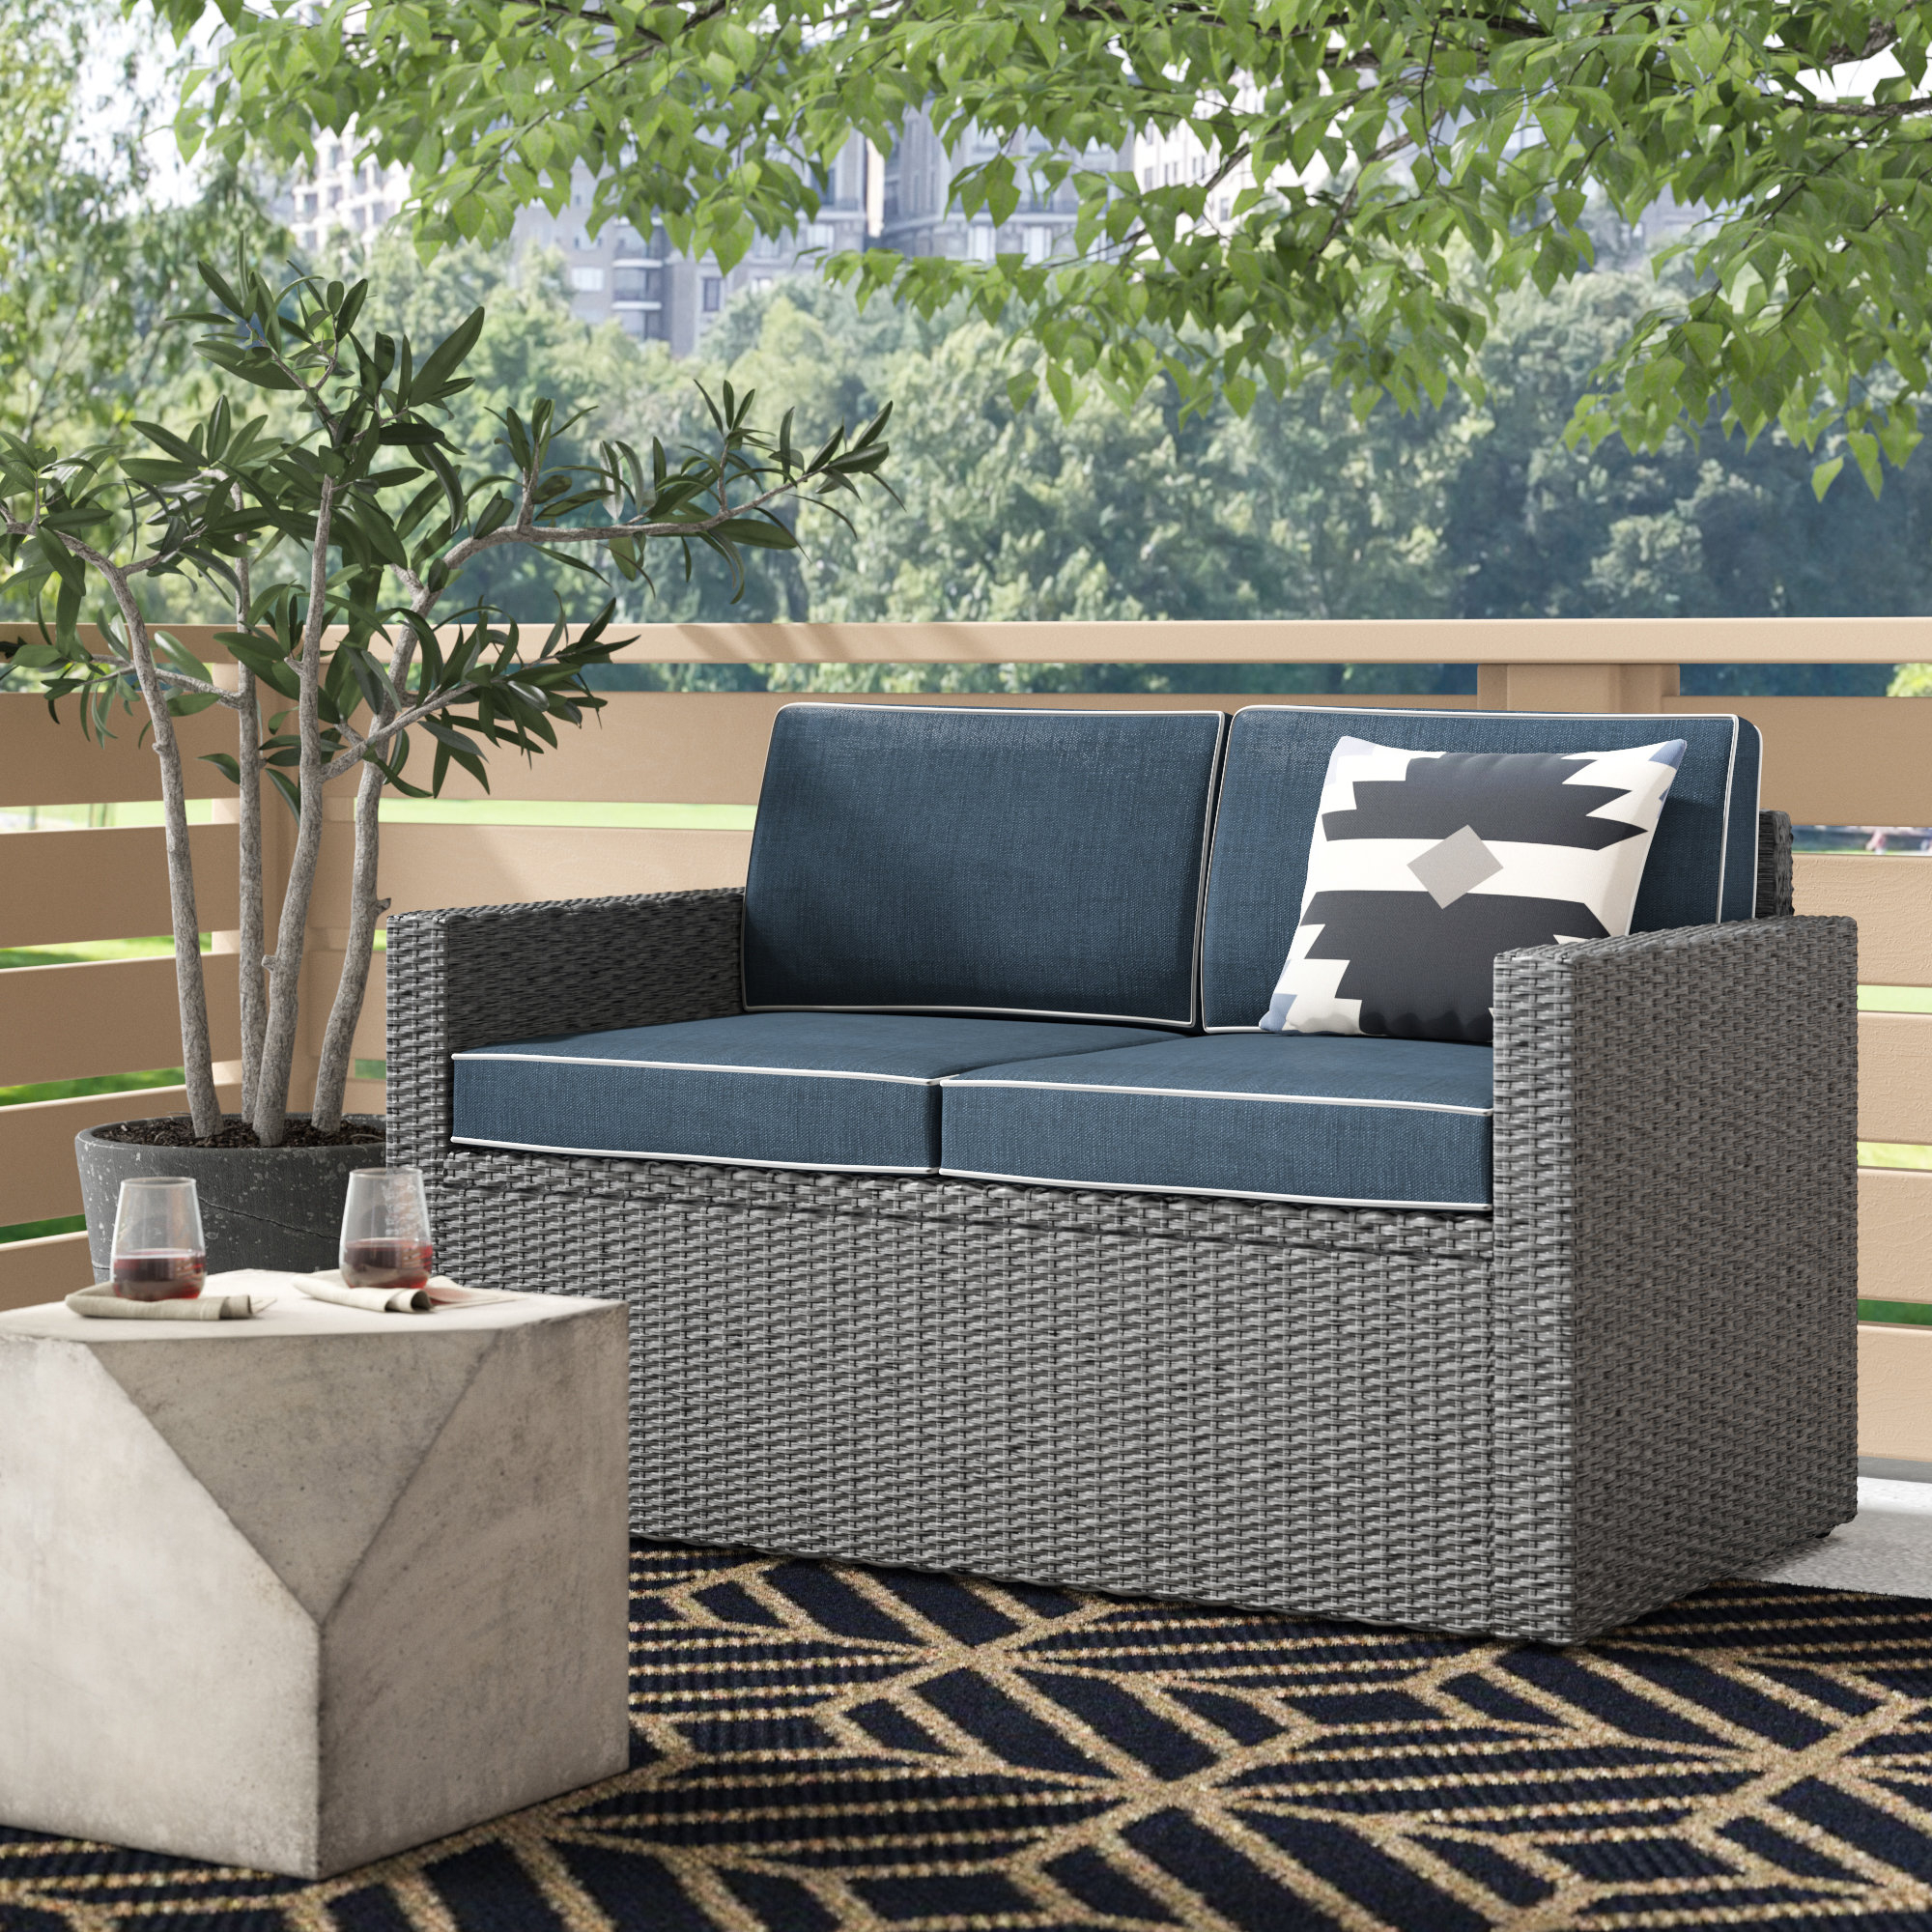 Mendelson Loveseat With Cushion With Favorite Mendelson Loveseats With Cushion (View 2 of 20)